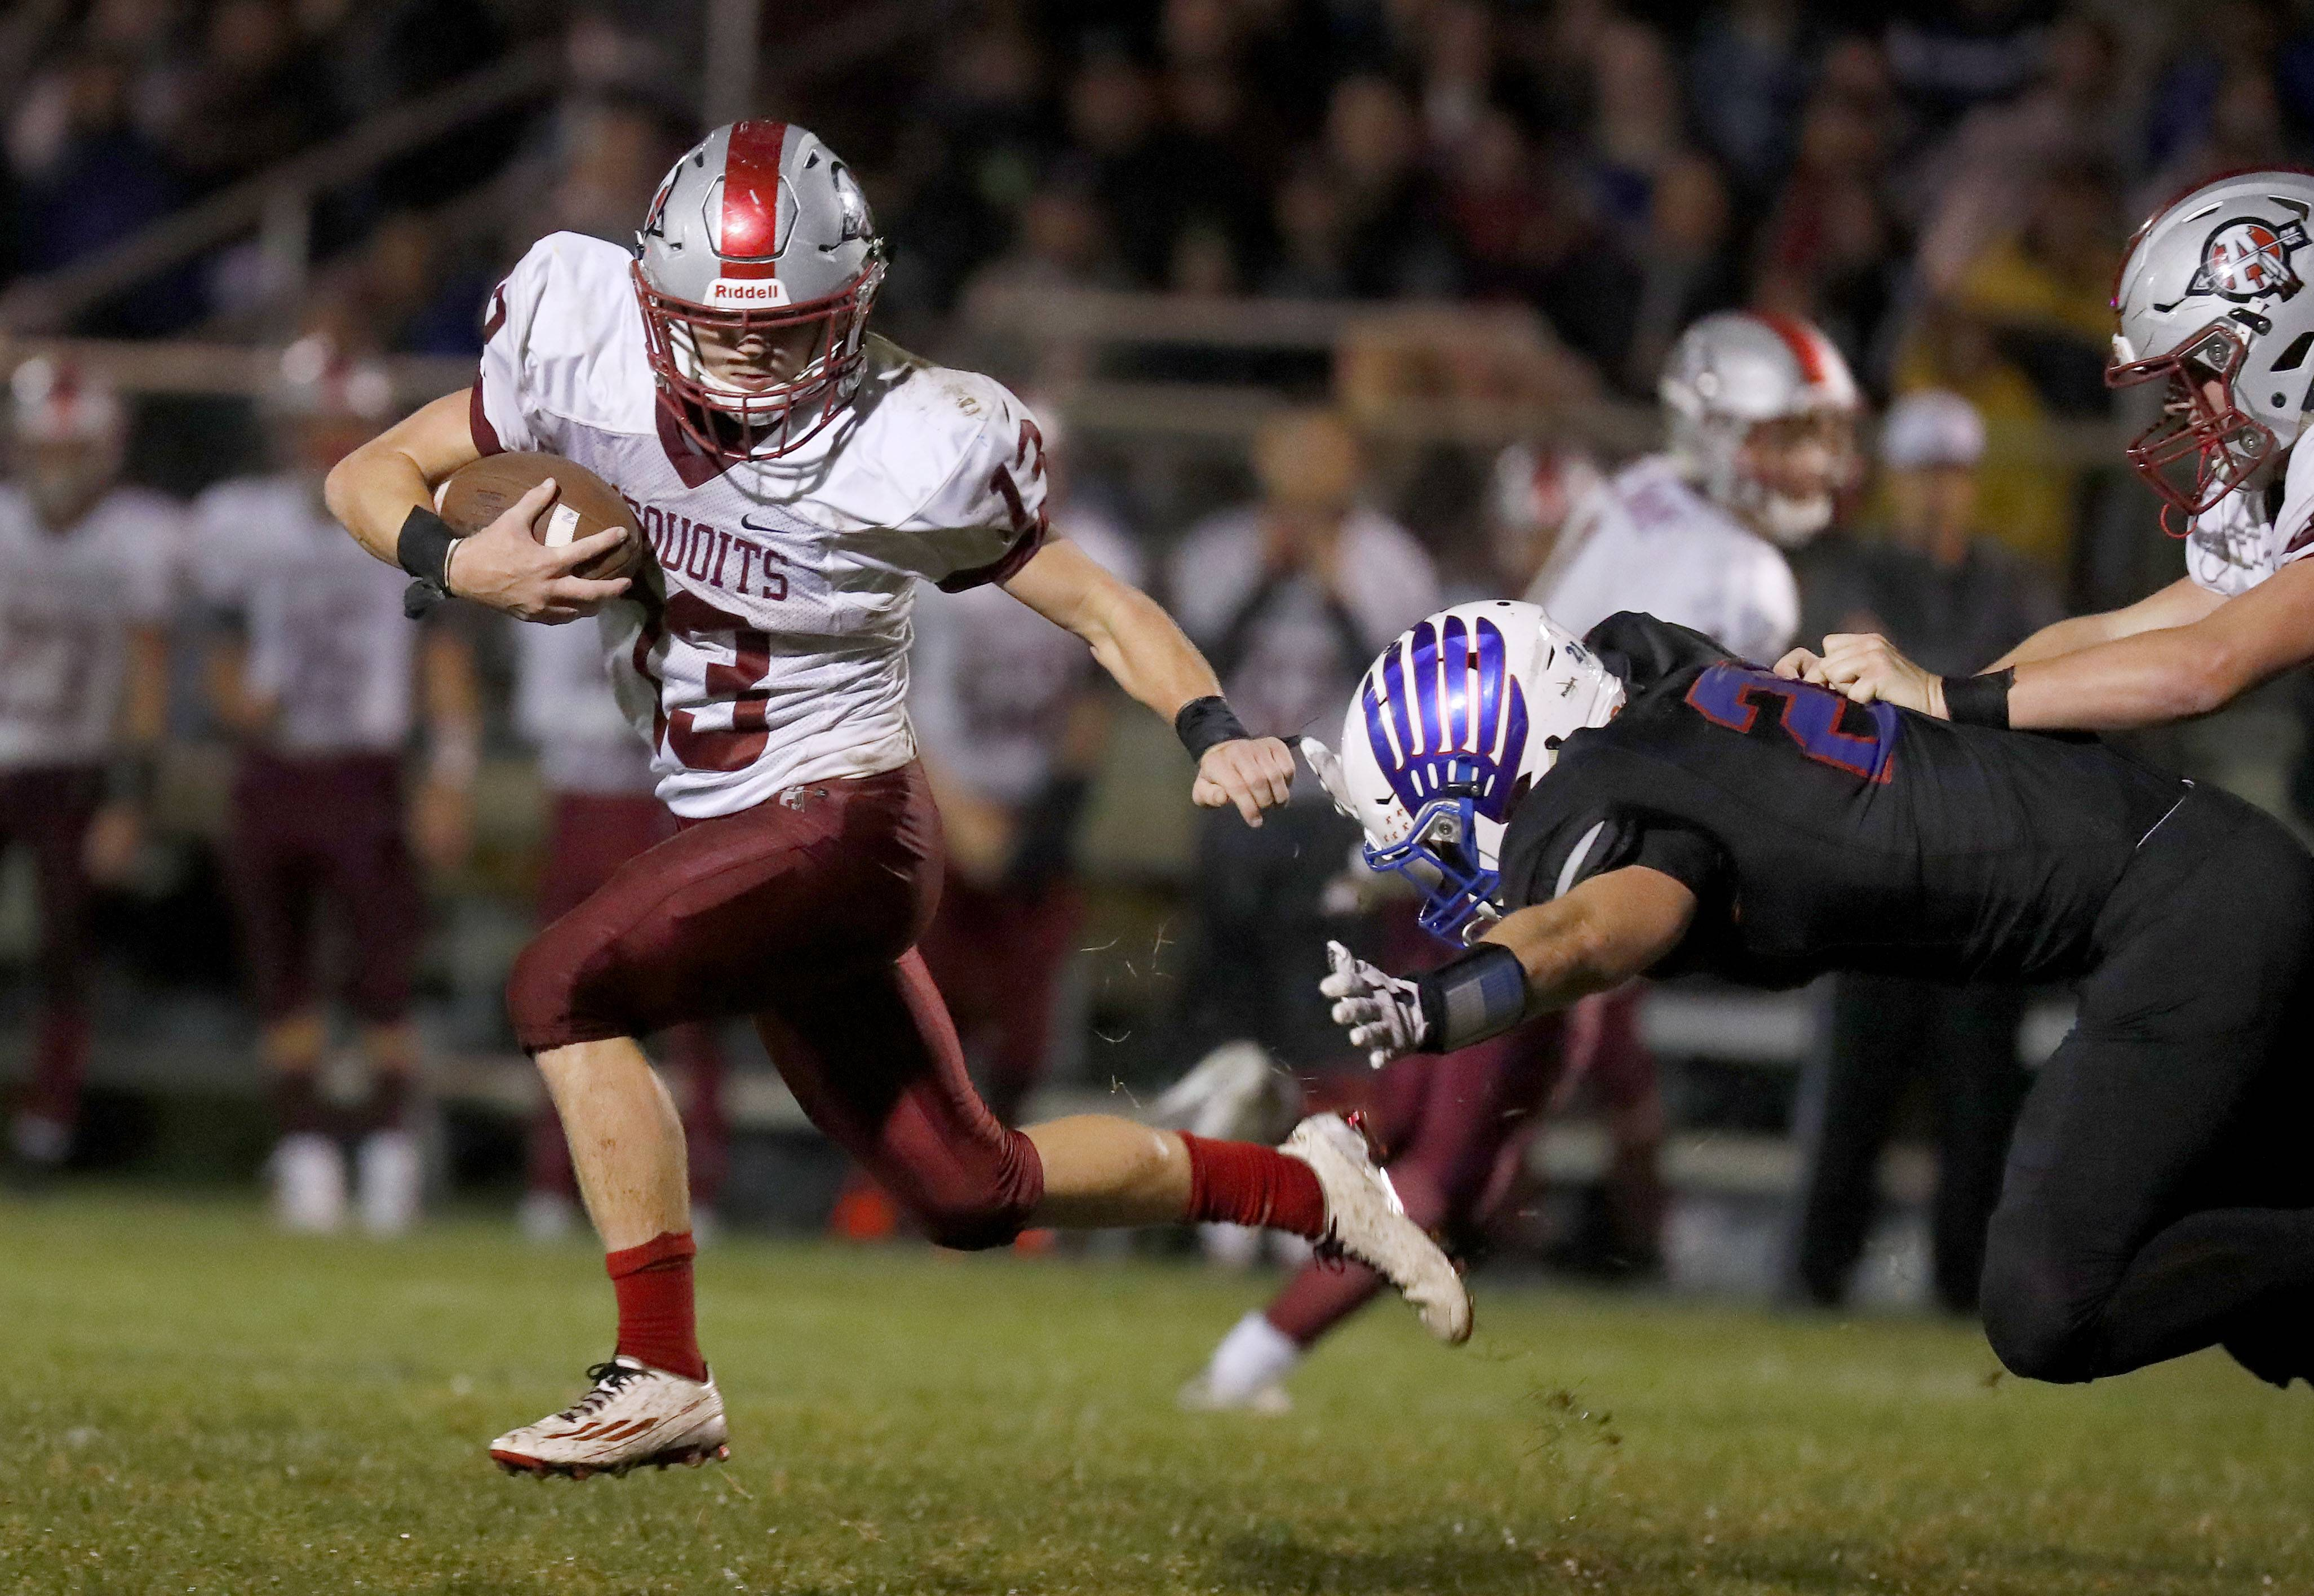 Antioch's Hunter Price, left, escapes from Lakes' Jared Kuzma on Friday night in Lake Villa.